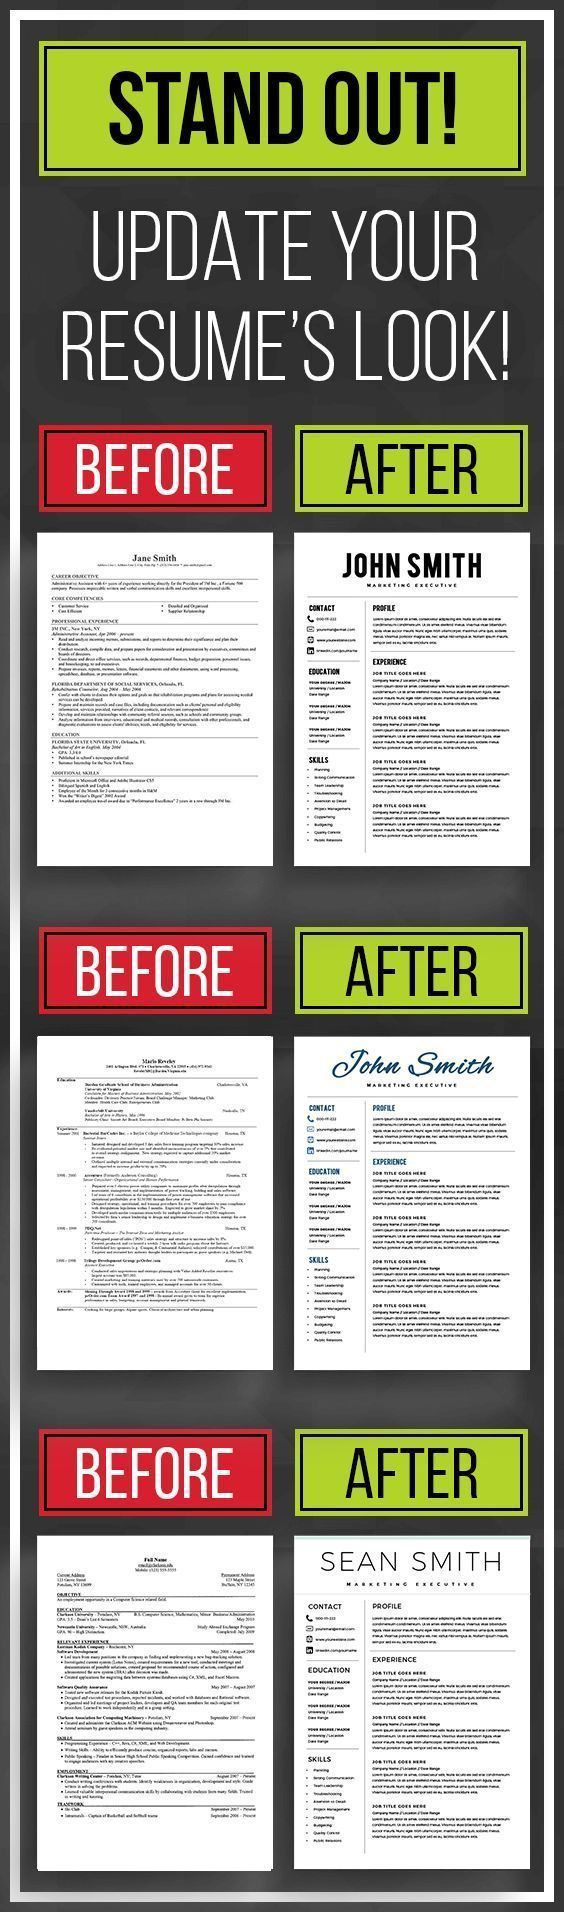 STAND OUT With Resume Template, Resume Templates Word, Cv Template, Resume  Templates For Word, Template For Resume, Simple Resume Template, Resume  Templates ...  Resume Templates In Word